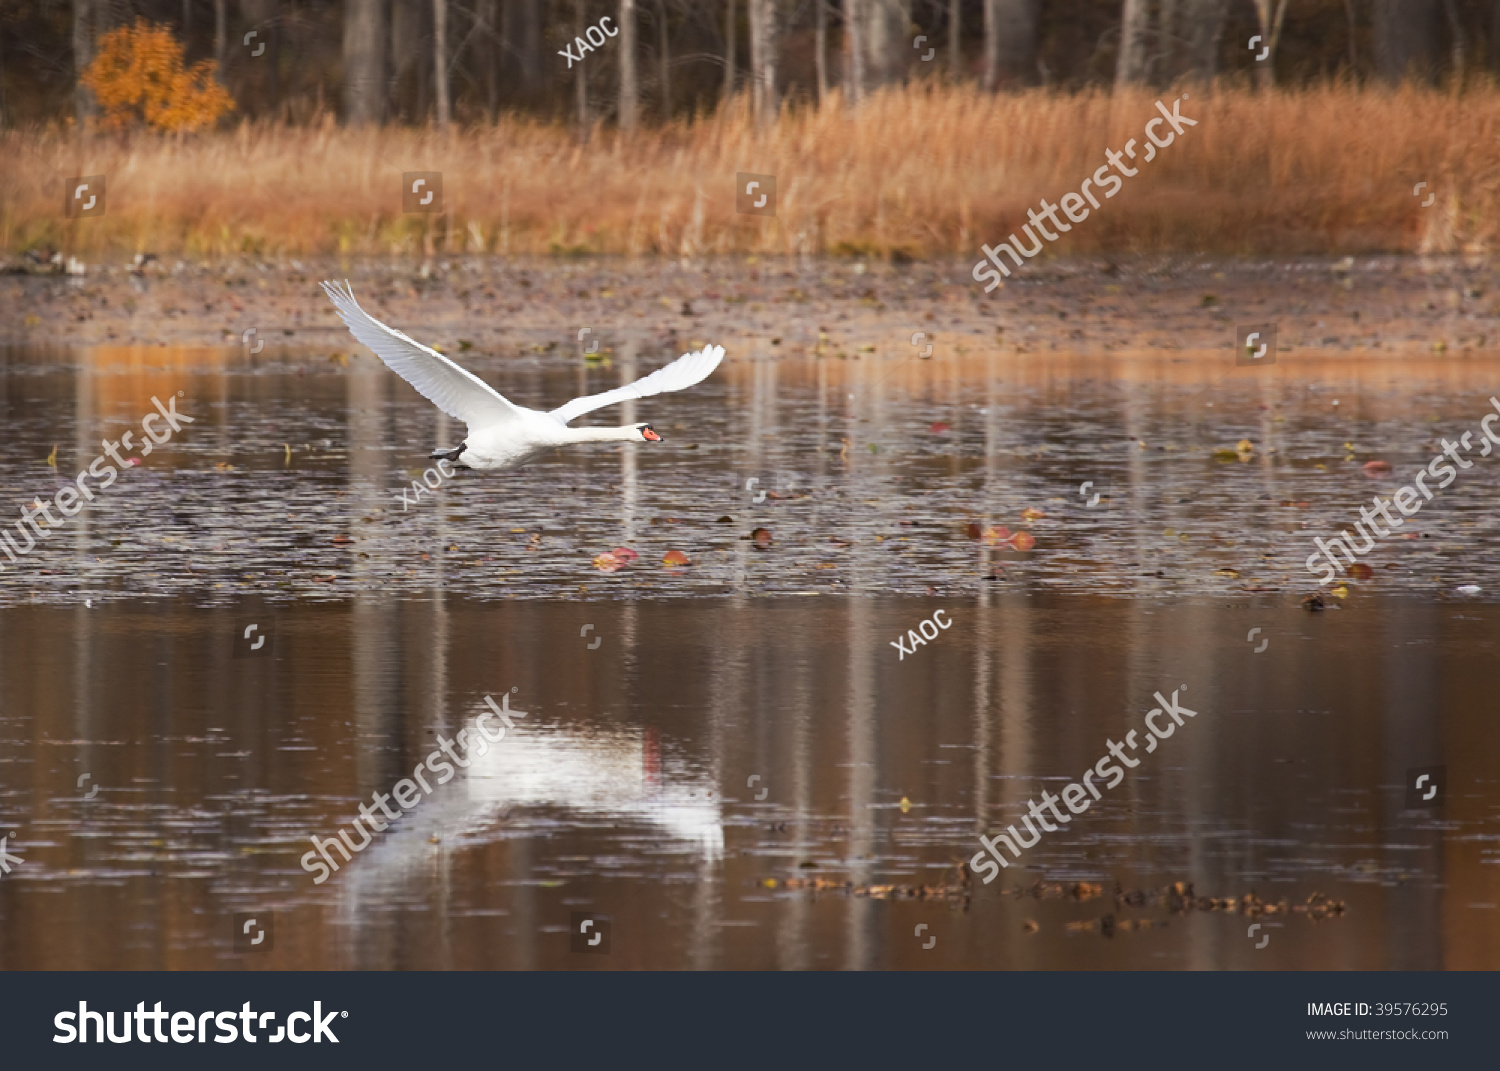 Photo Of A Beautiful Swan Flying Over Water - 39576295 ...